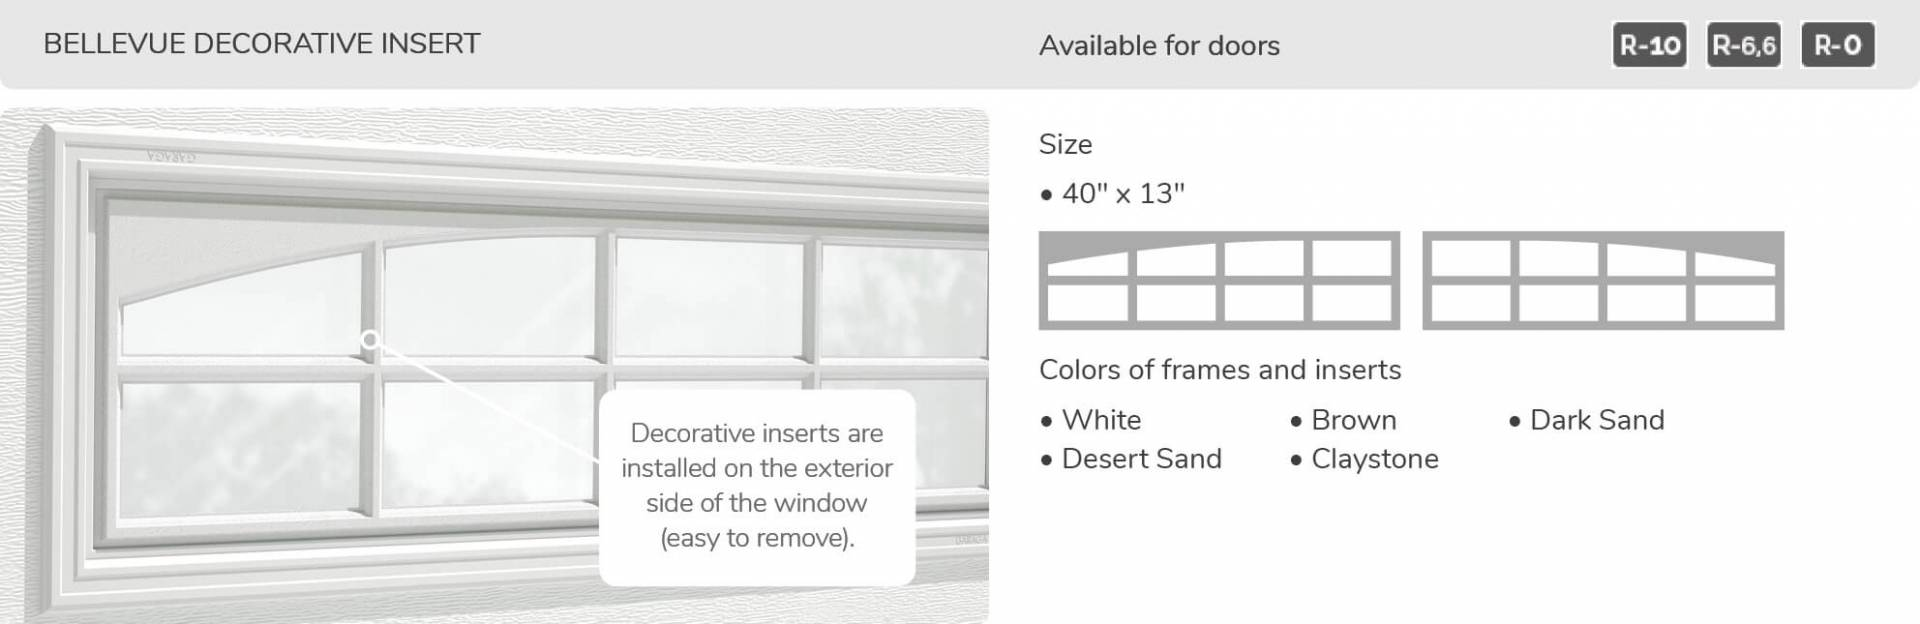 "Bellevue Decorative Insert, 40"" x 13"", available for doors R-10, R-6.6, R-0"